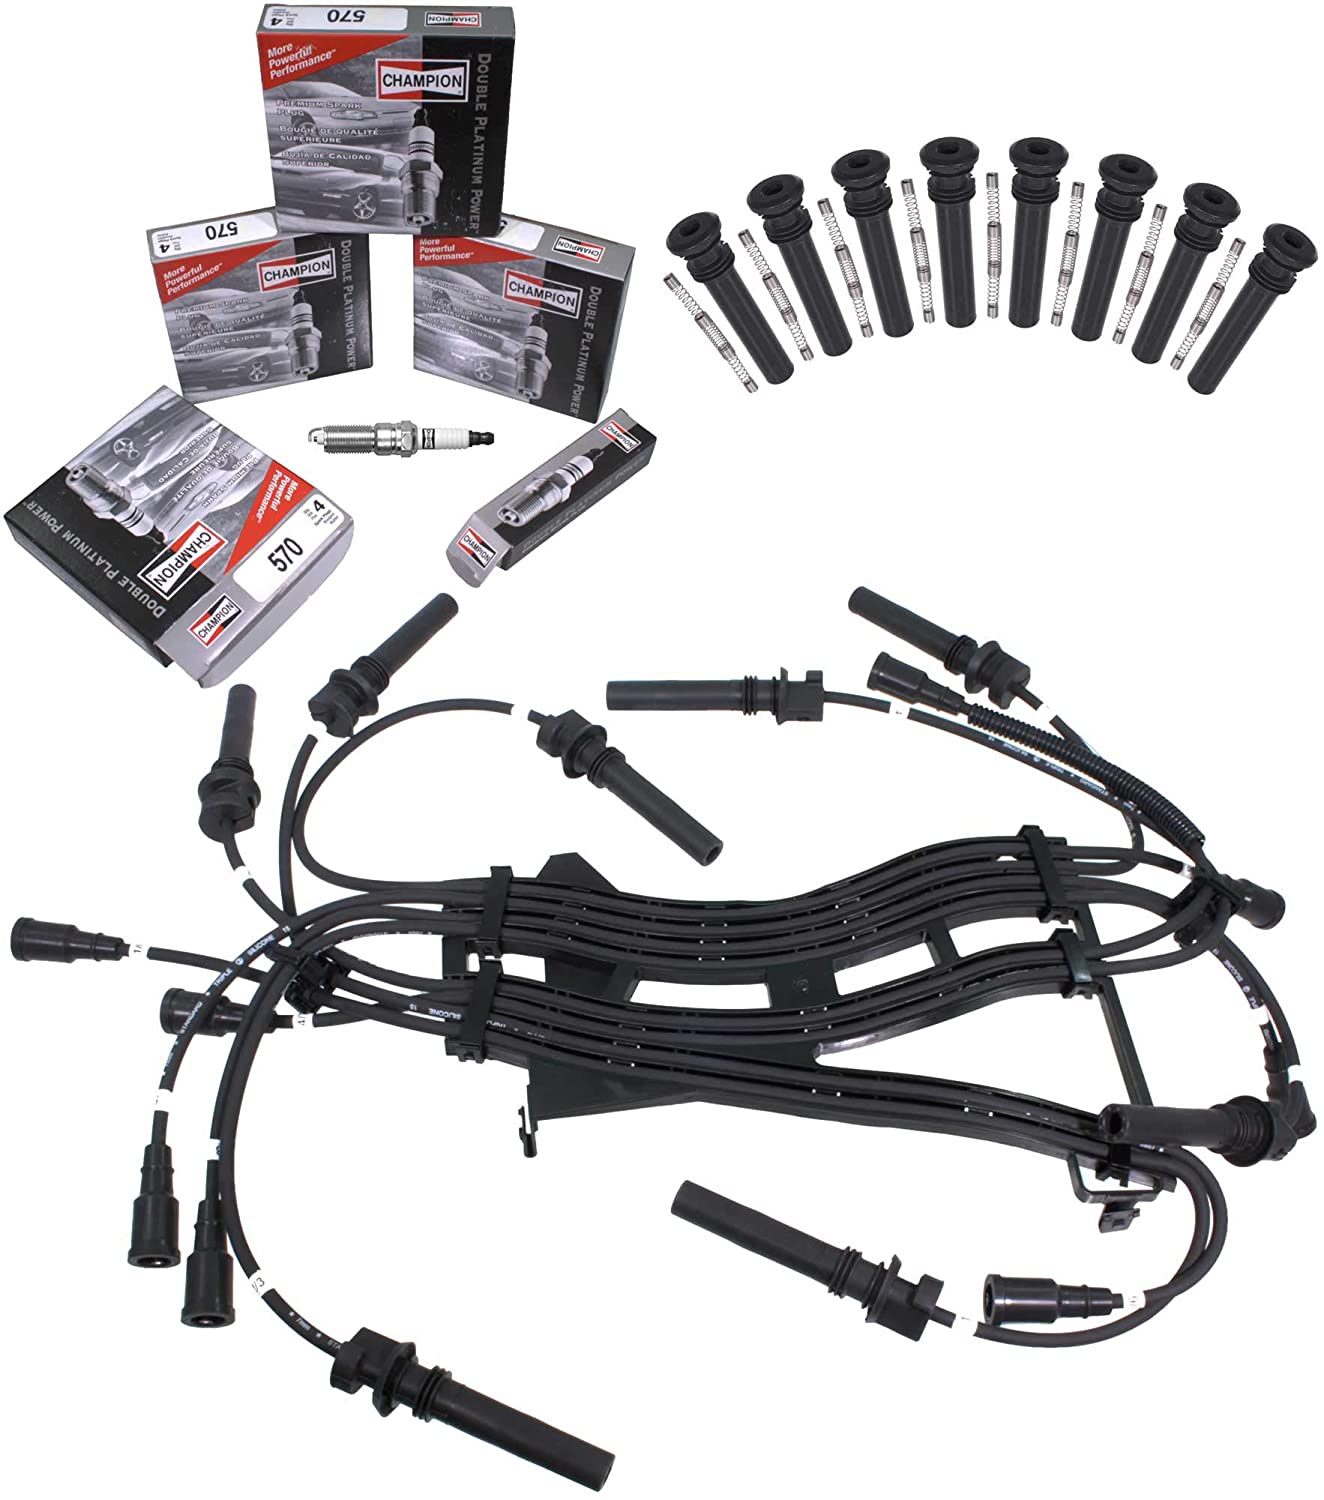 APDTY Tune Up Kit Includes 16 OEM Spark Plugs, 16 Ignition ... on